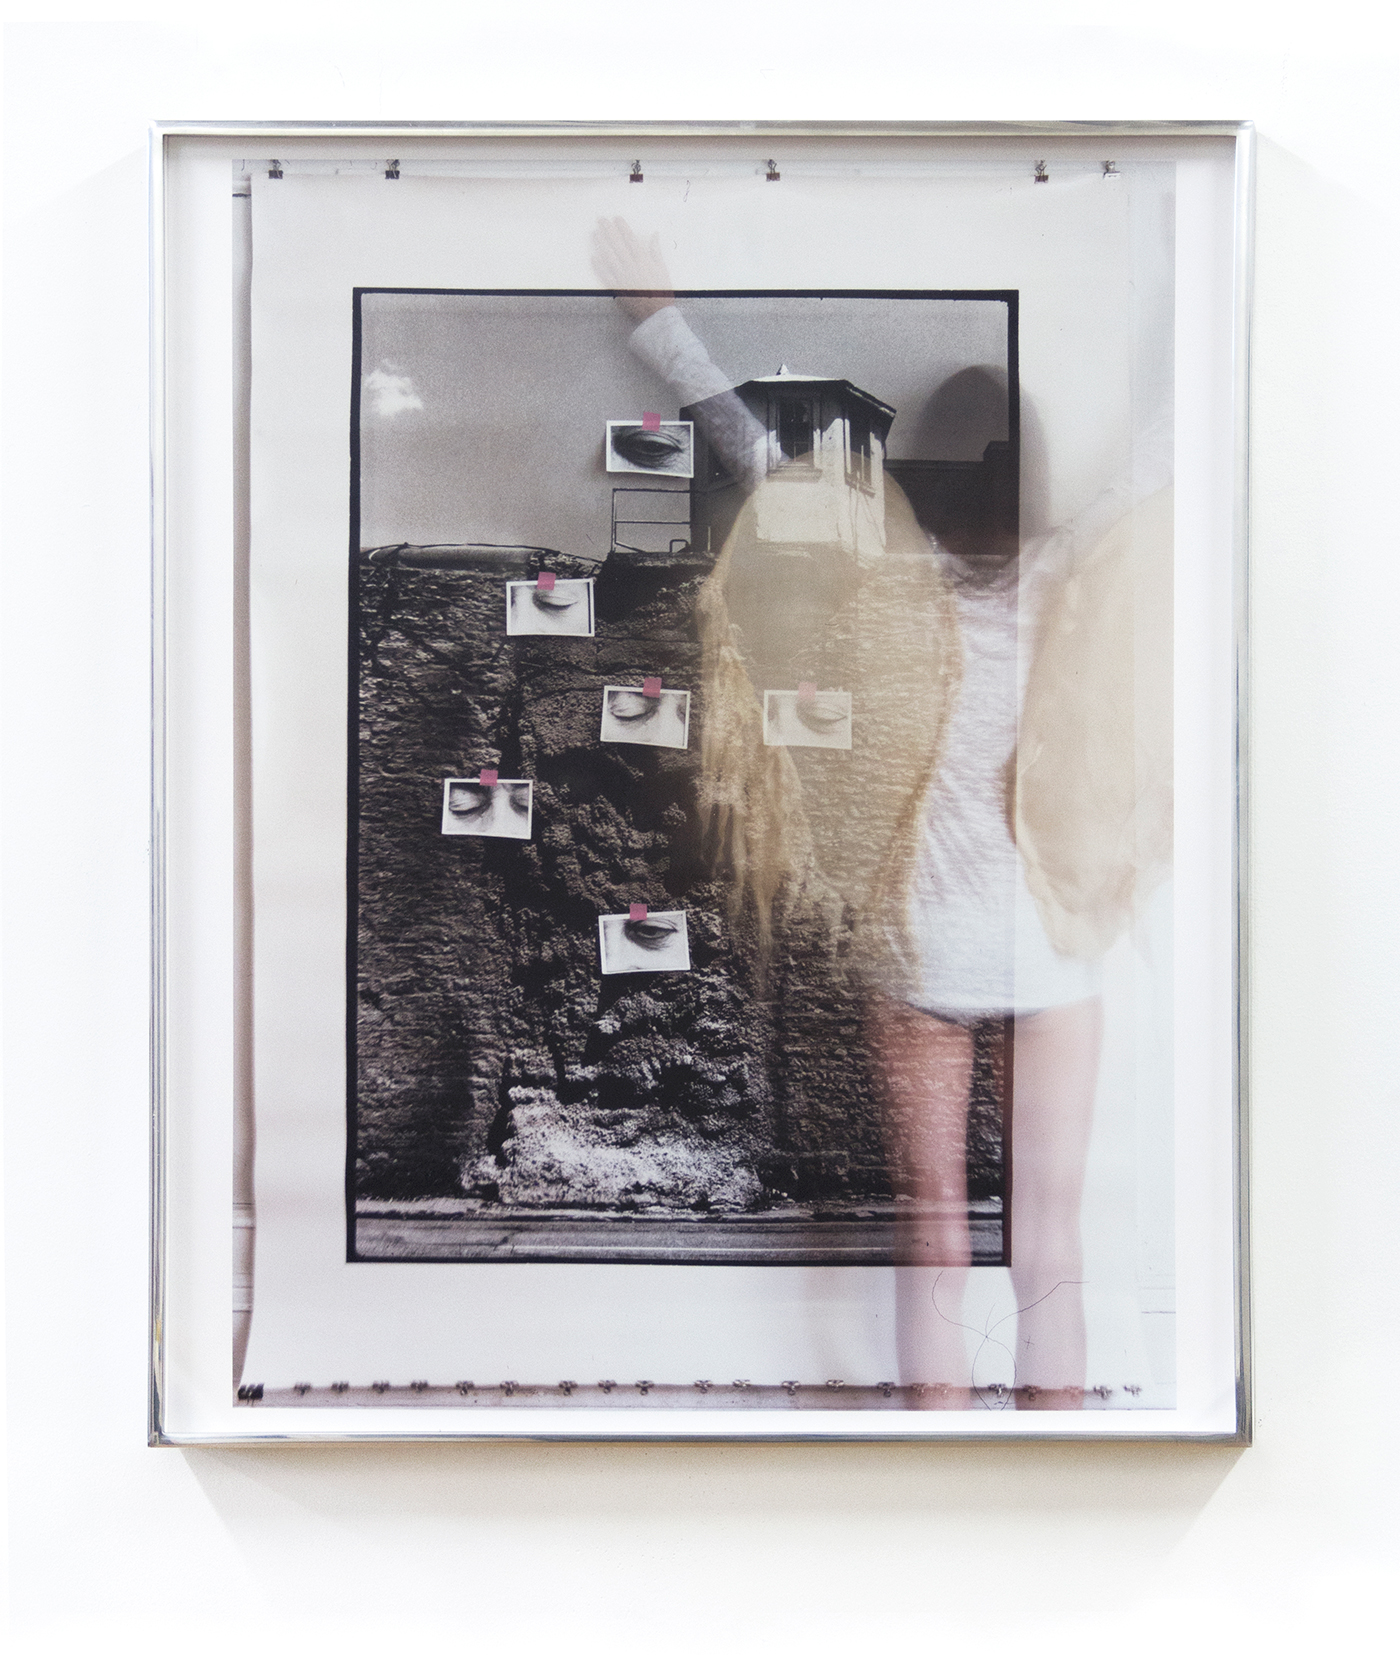 """Moyra Davey, """"Oozing Wall (Wings)"""" (2014), C-print, 24 x 20 inches (click to enlarge)"""